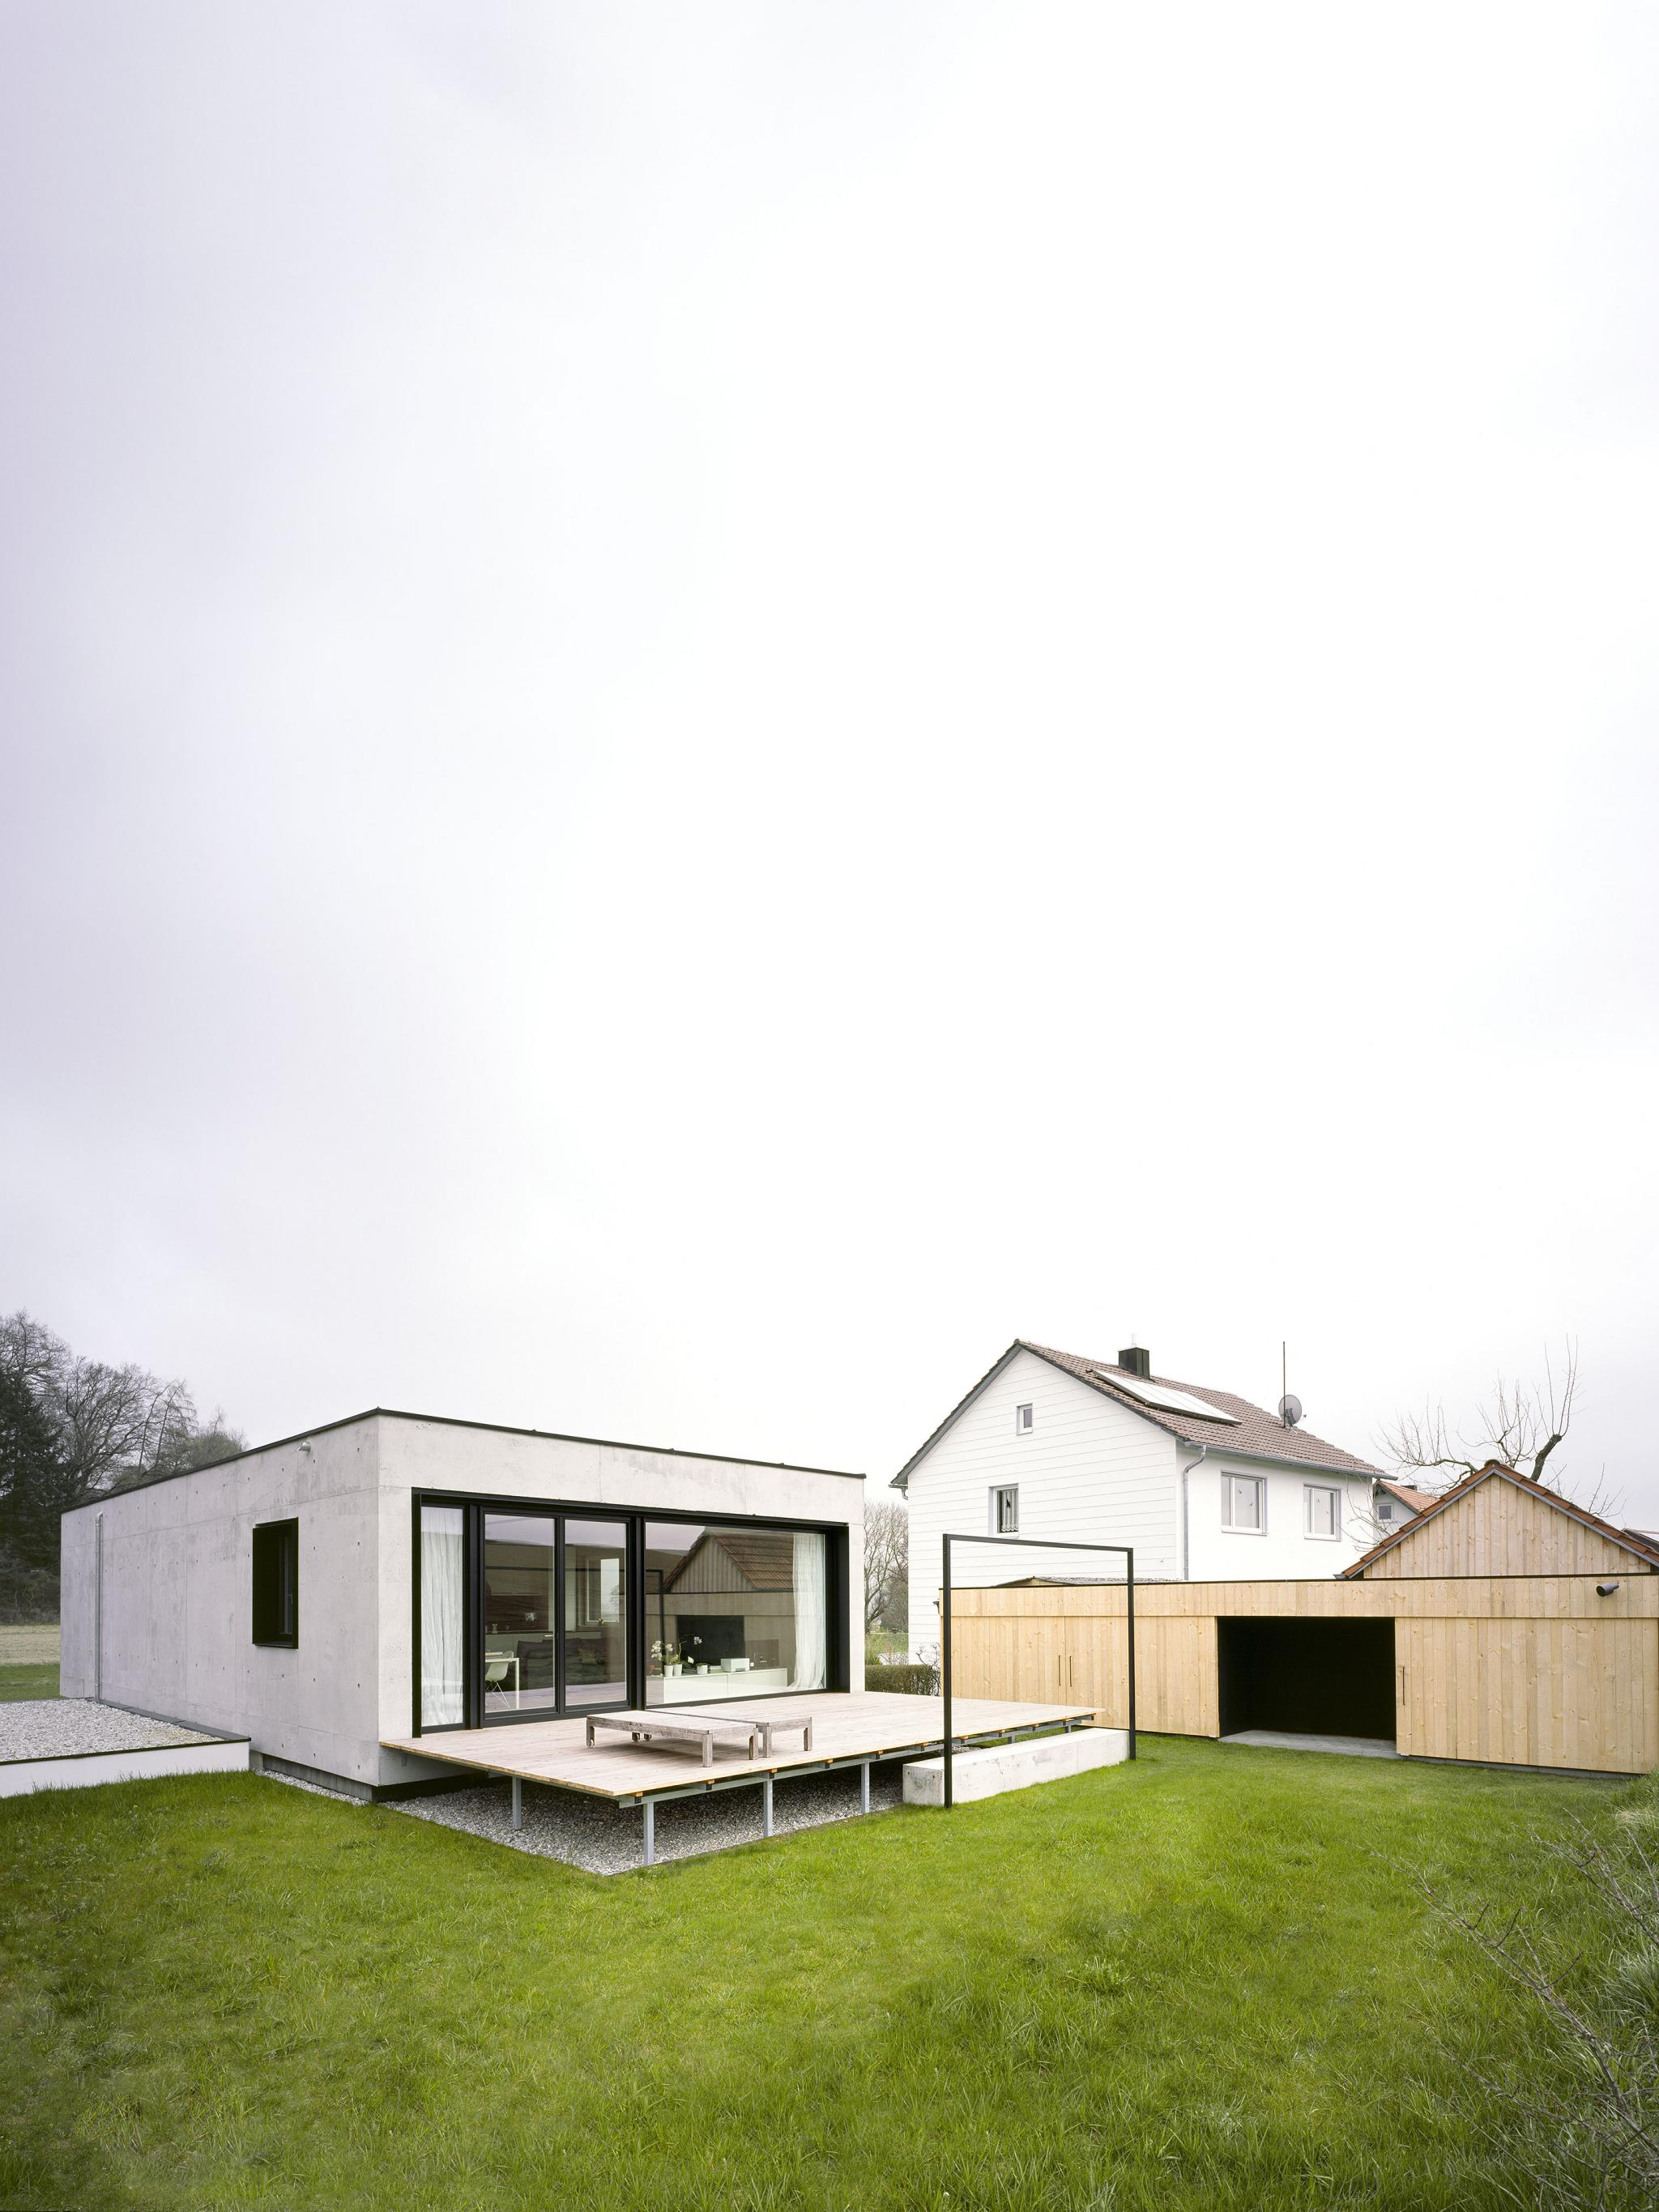 Home Artikel single family home aiterbach germany heidelbergcement